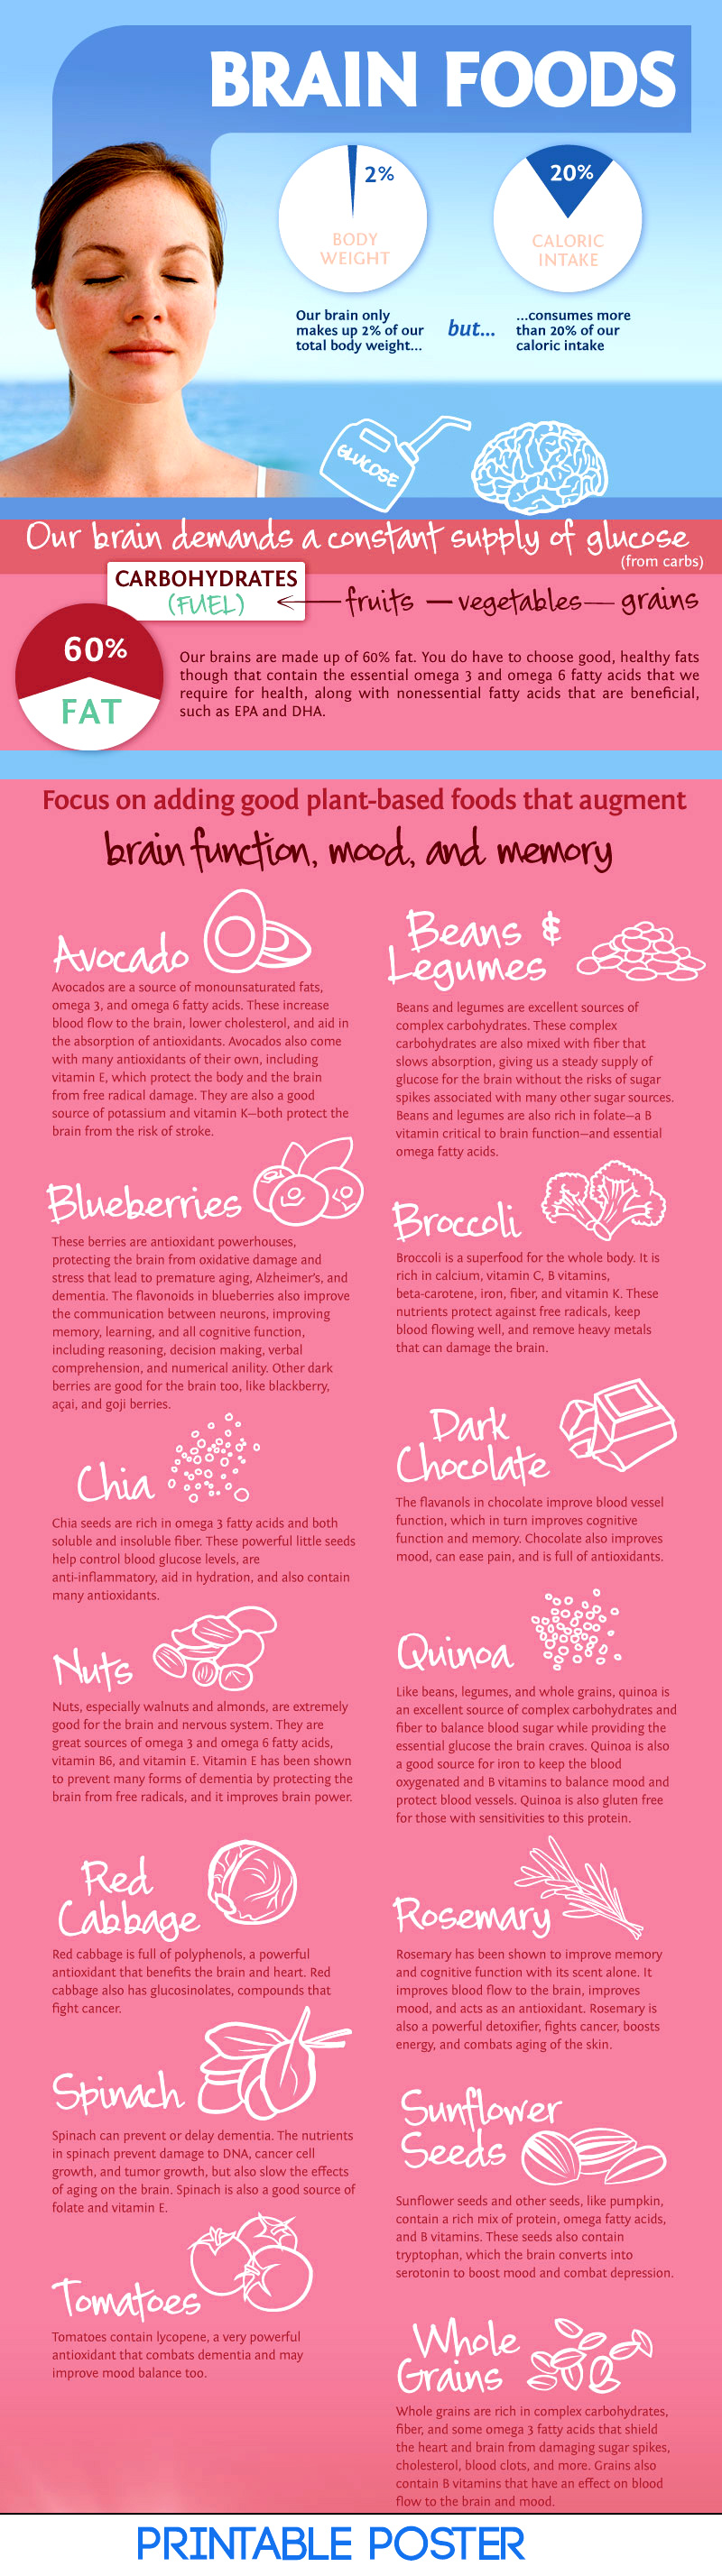 best-Foods-for-brain-infographic-how-to-improve-memory